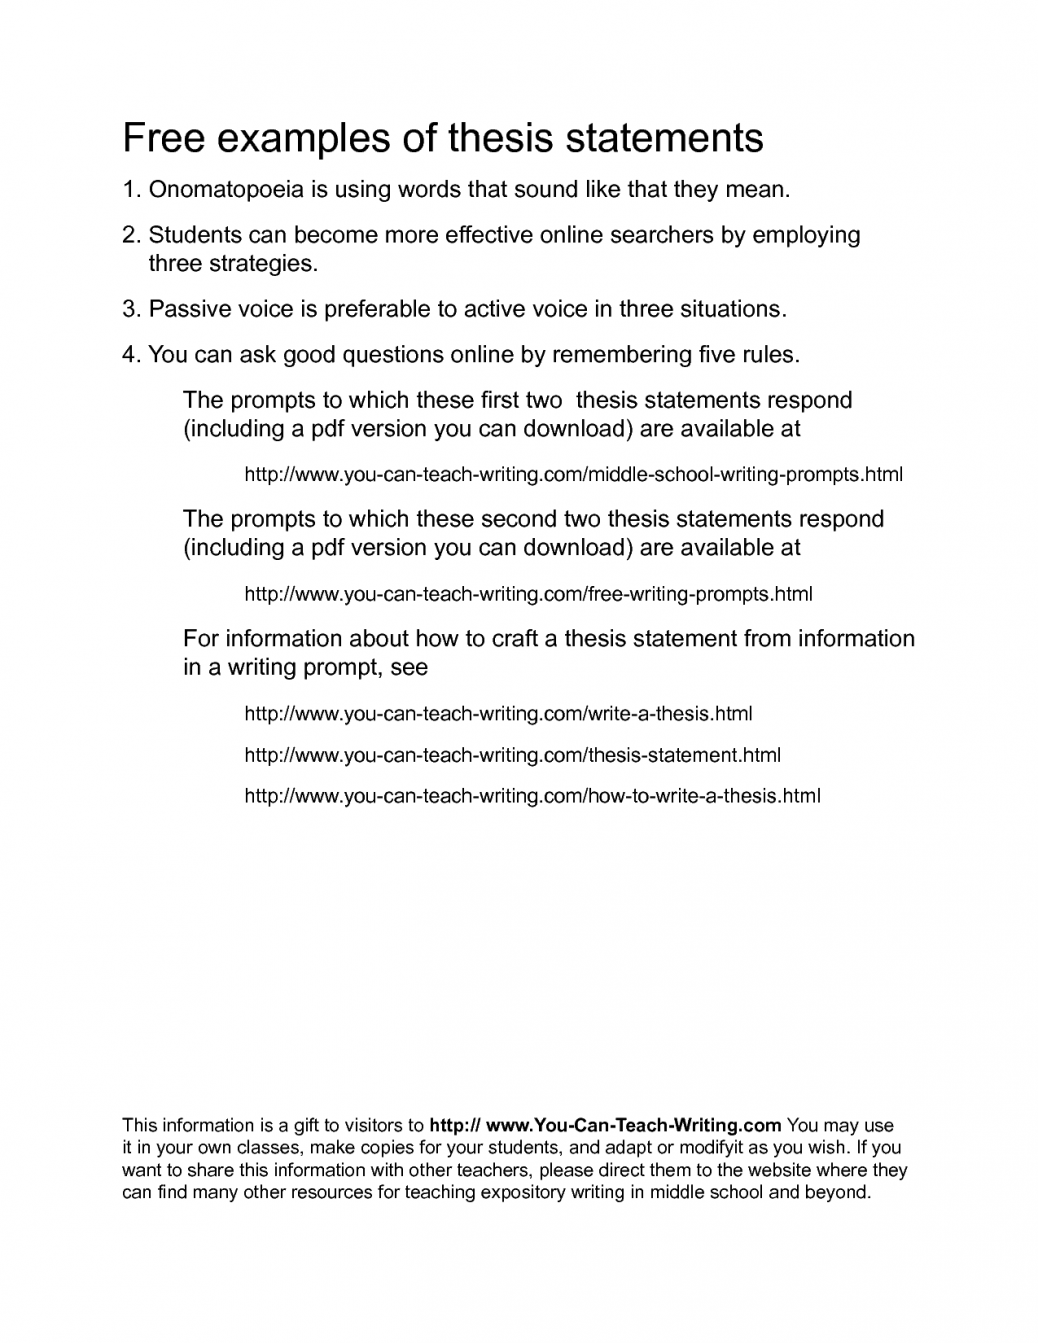 Practice writing thesis statements answers